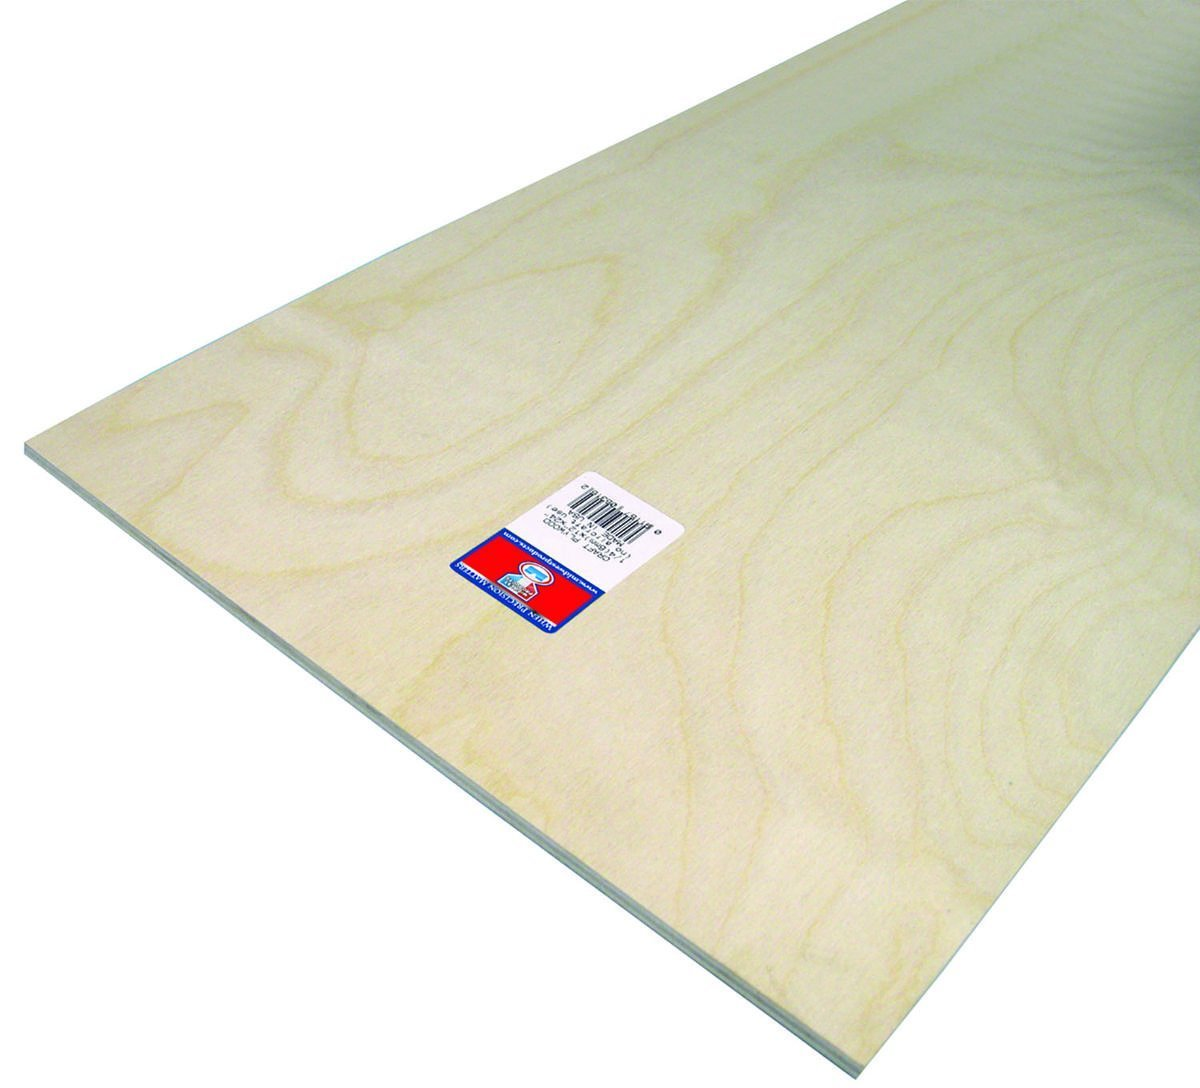 Midwest Products 5316 Craft Plywood, 12 by 24 by 0.25-Inch, 6-Pack by Midwest Products Co.